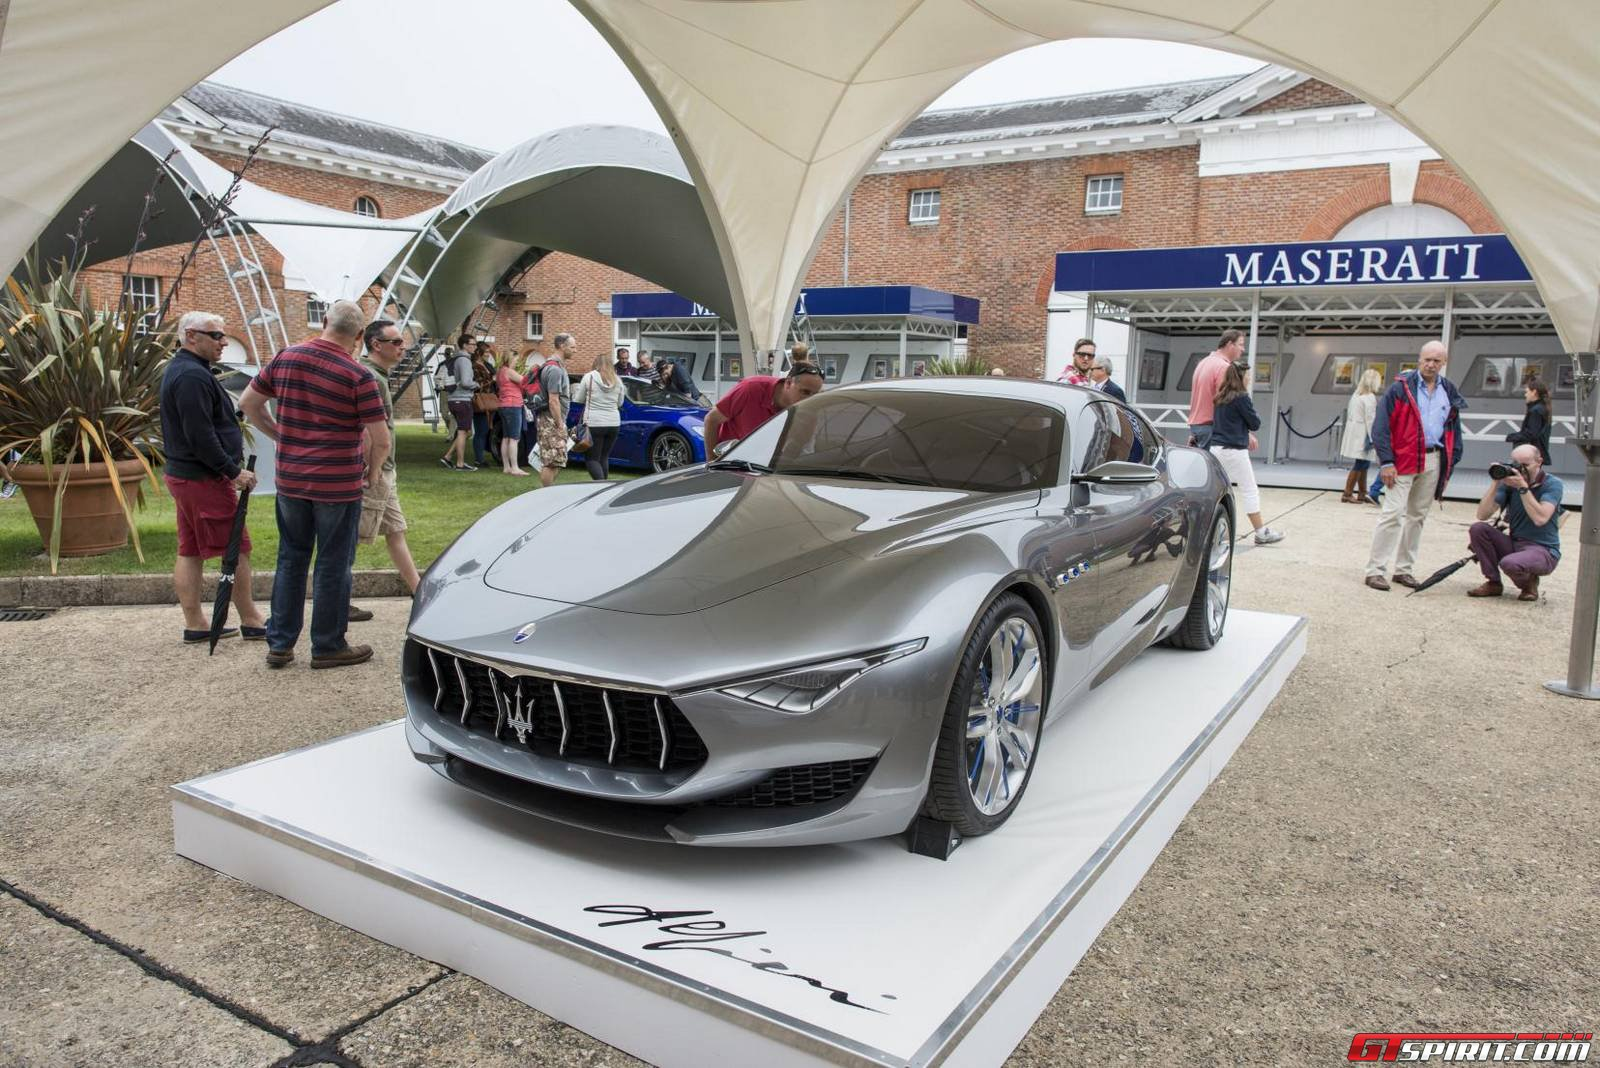 Goodwood FOS 2014: Best of Maserati Cars